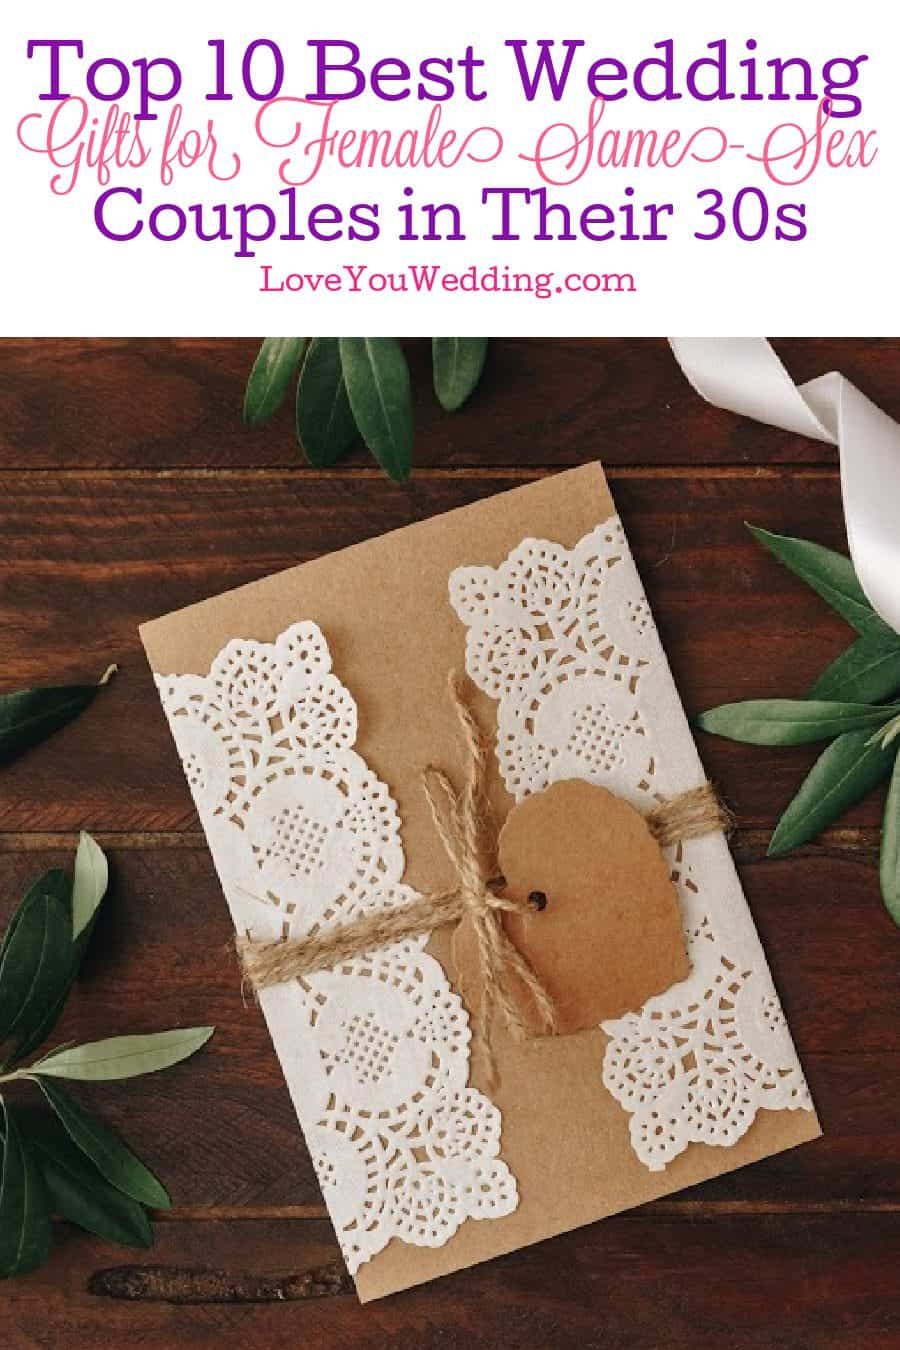 Looking for some ideas for the best wedding gifts for female same-sex couples in their 30s? Check out our top 10 picks!